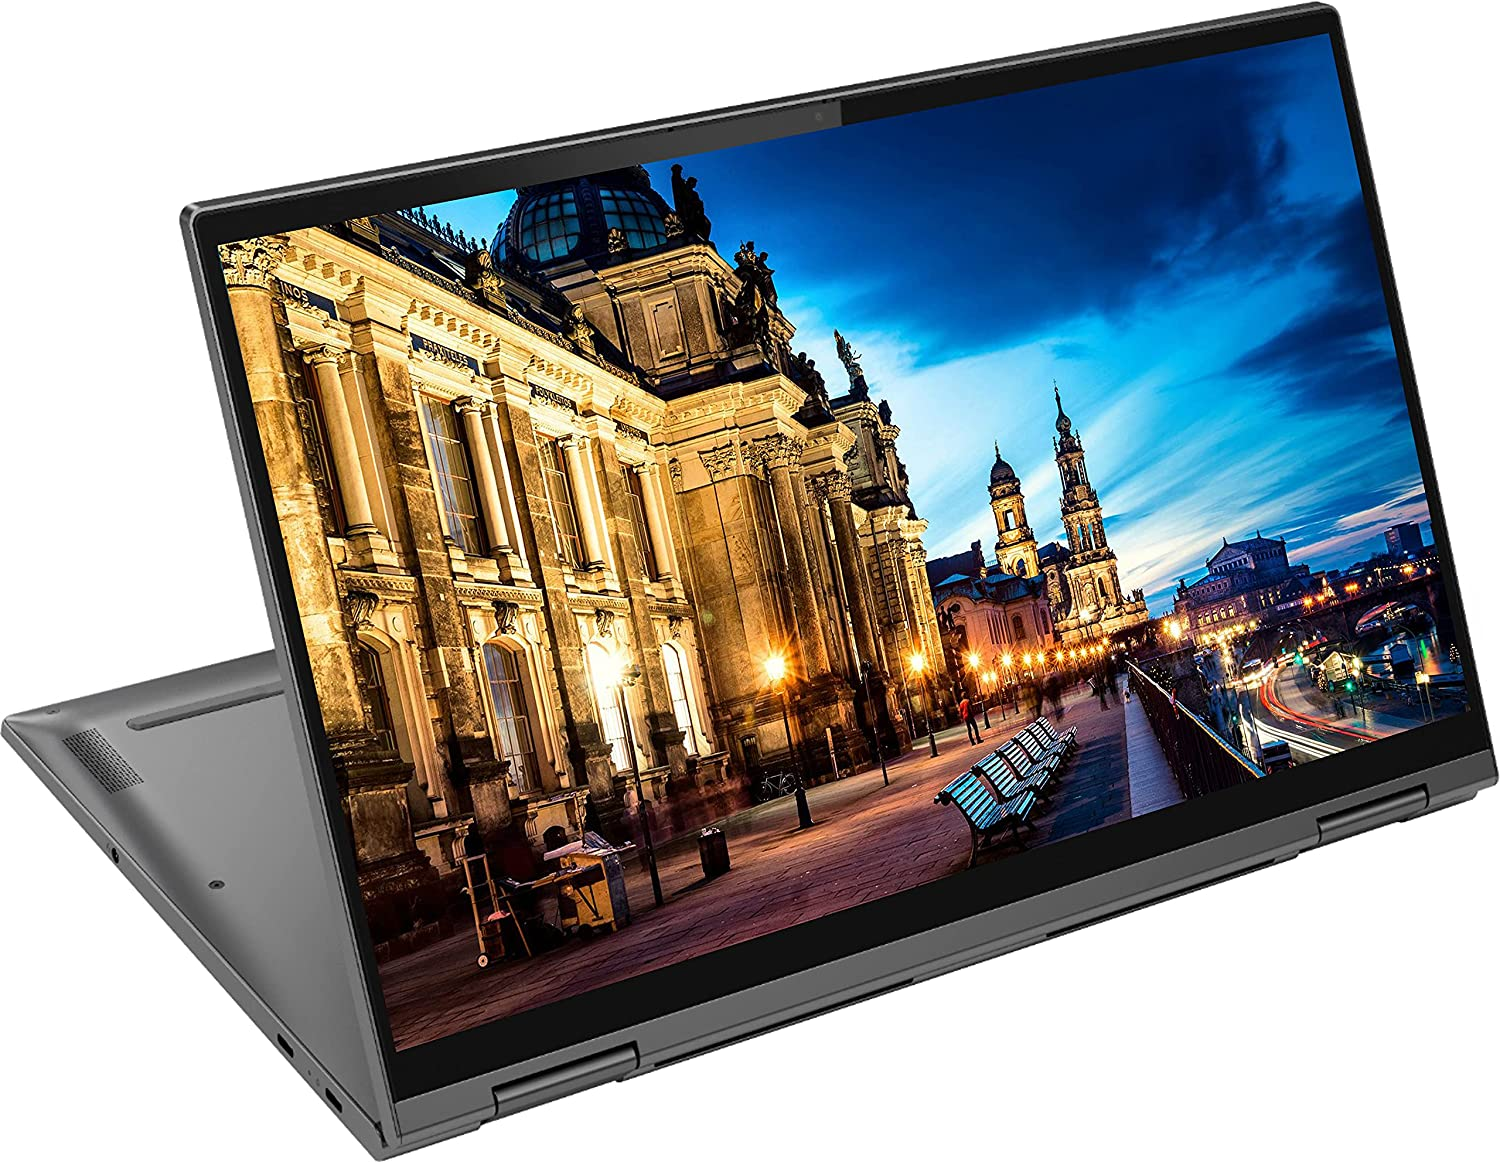 2021 Newest Lenovo Yoga C740 Choice 2-in-1 Laptop Full Touchs sale 15.6